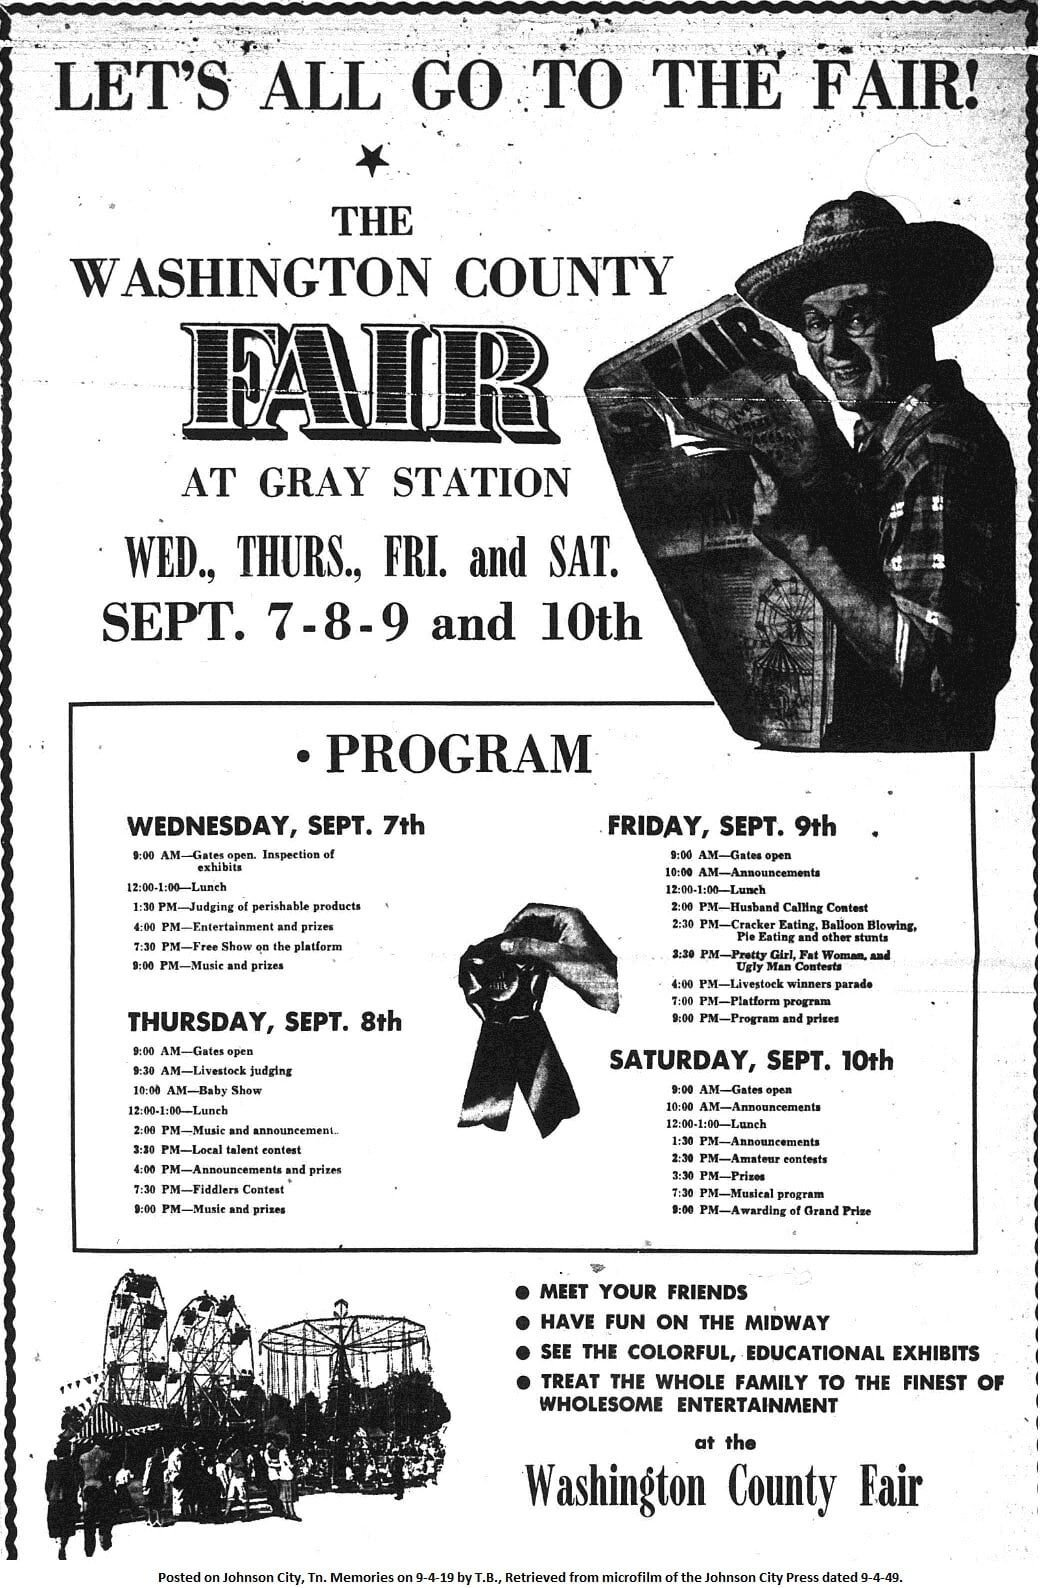 The Washington County Fair 1949